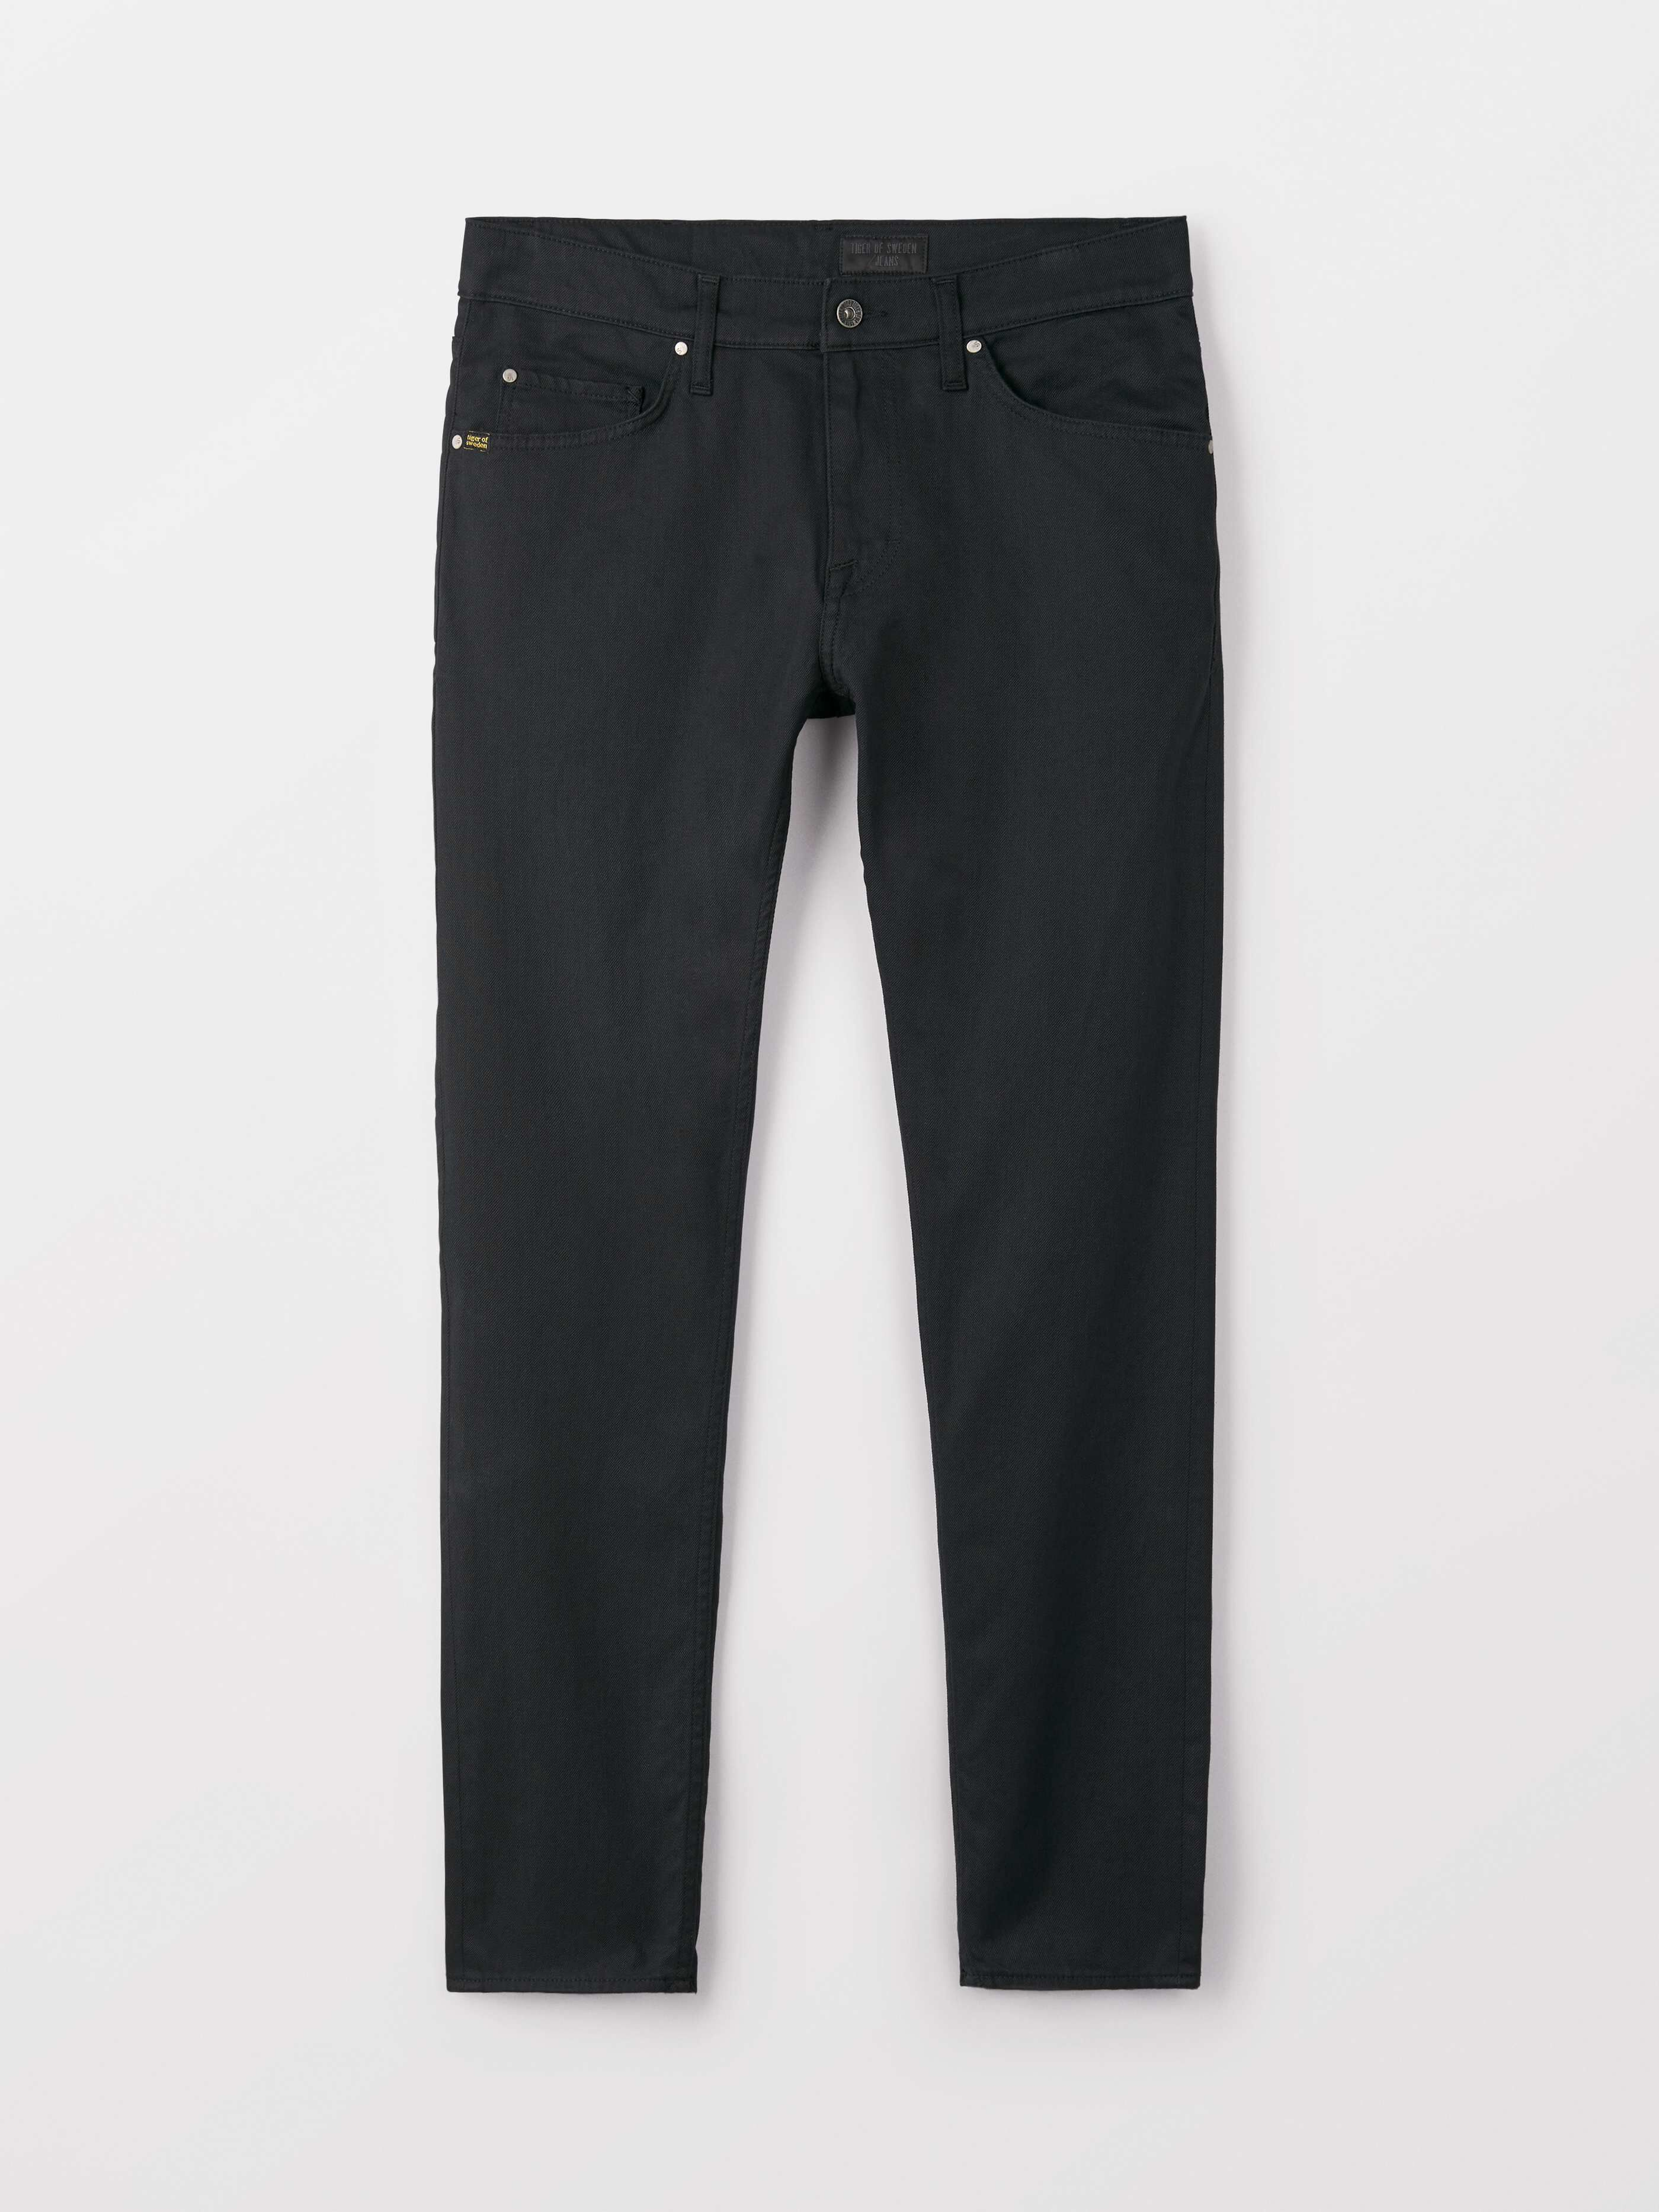 ... Pistolero jeans in Black from Tiger of Sweden ...